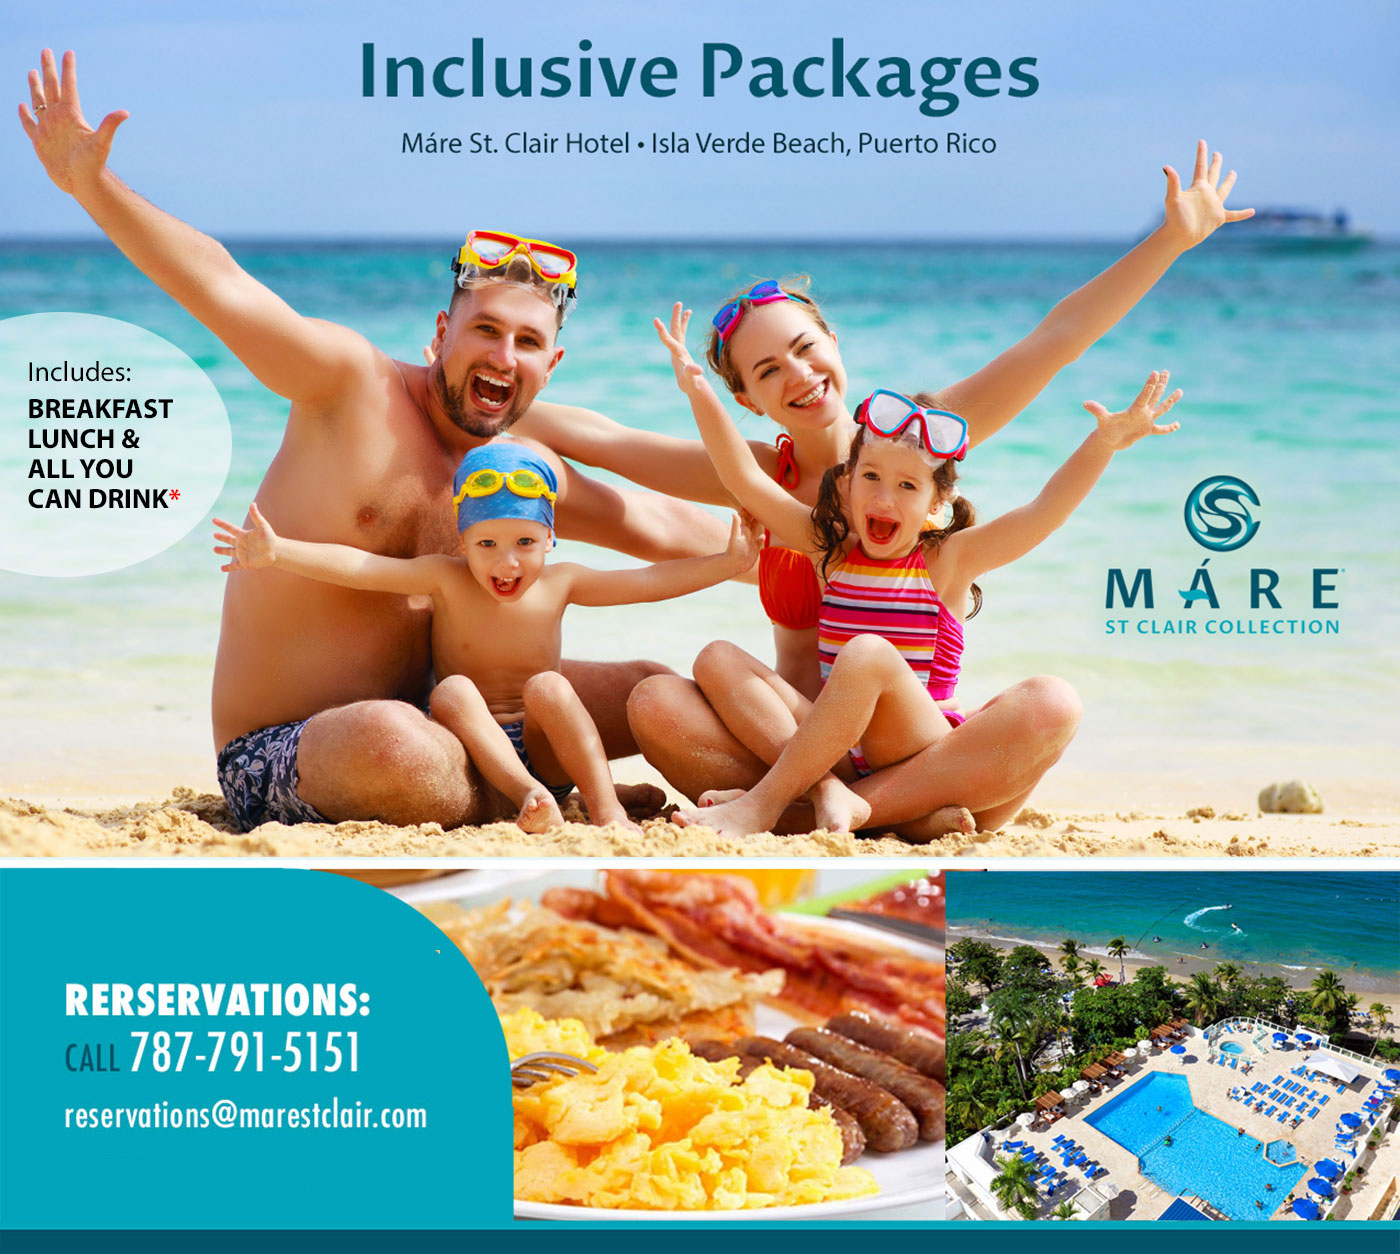 Inclusive Packages @ Mare St. Clair Hotel, Isla Verde Beach, Puerto Rico